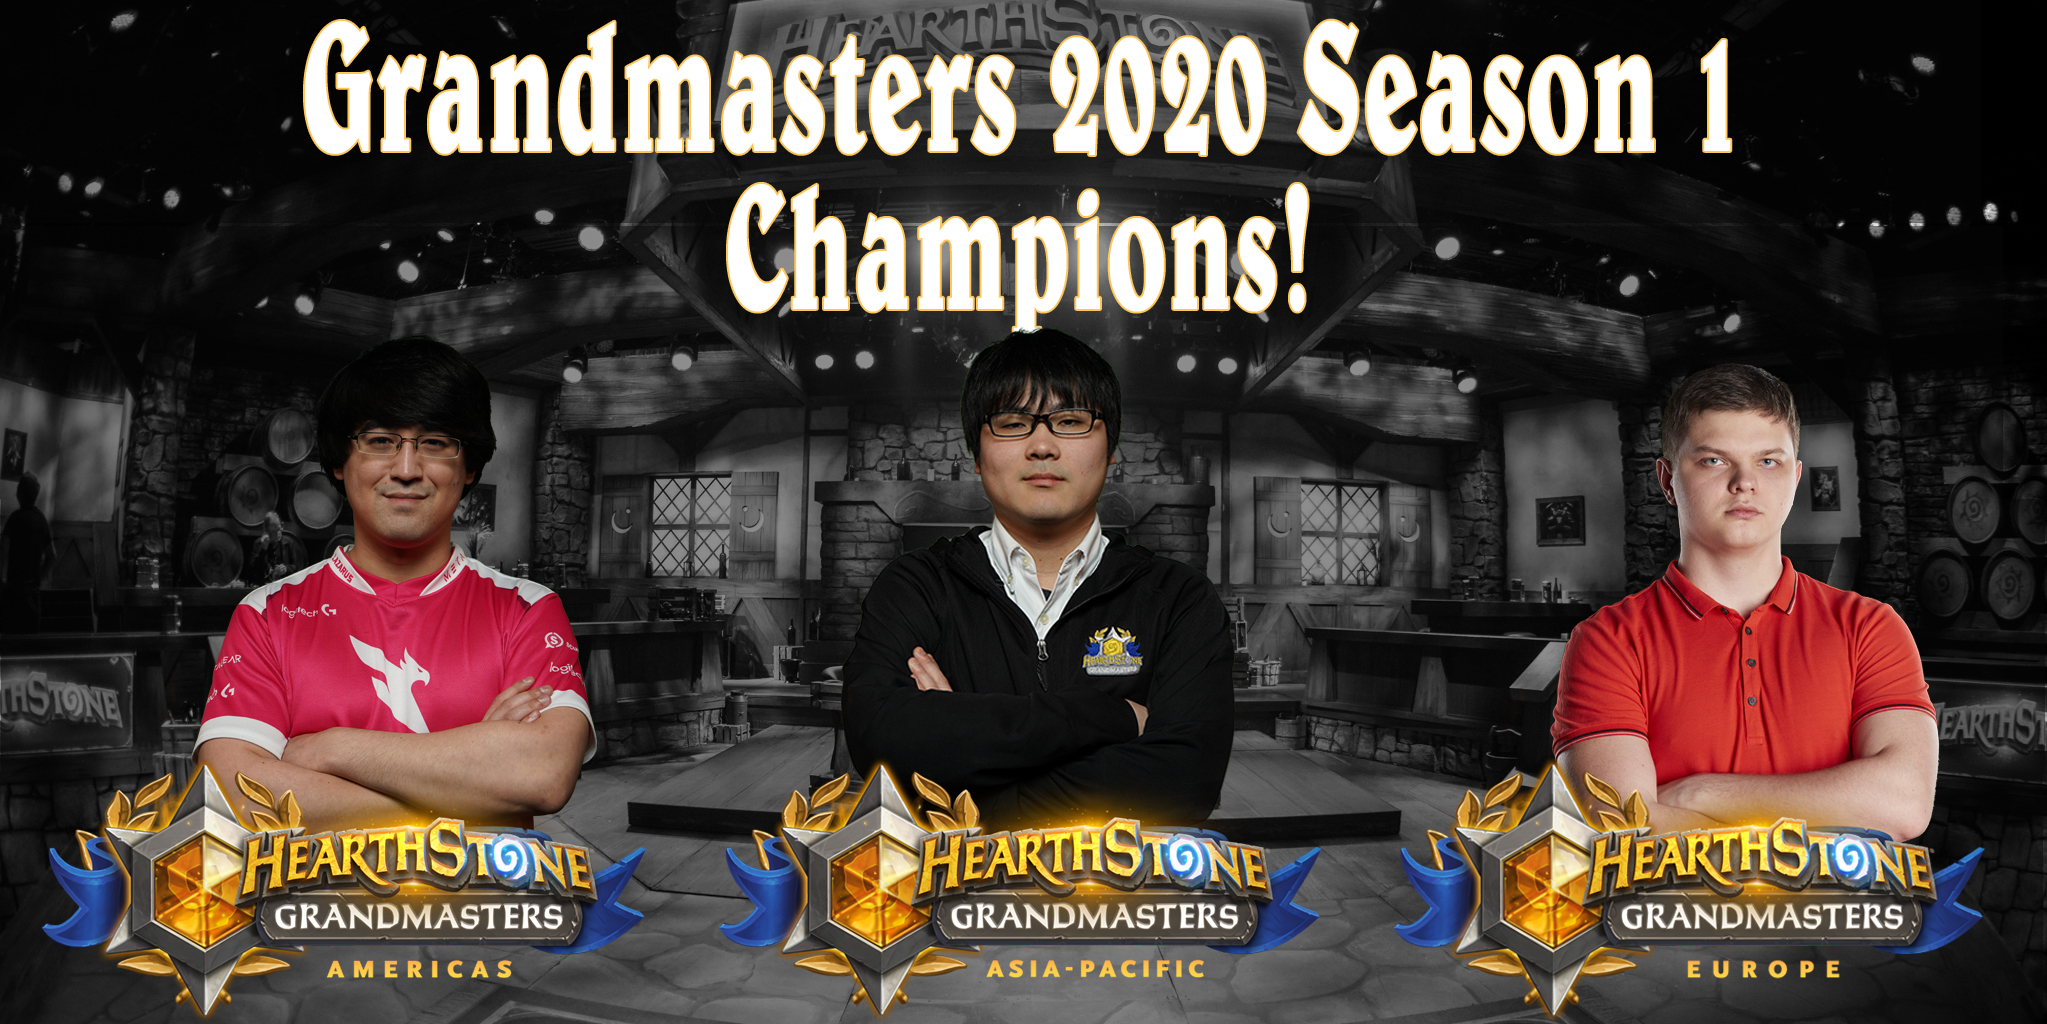 Grandmasters 2020 Season 1 Champions Are Heading to the World Championship!